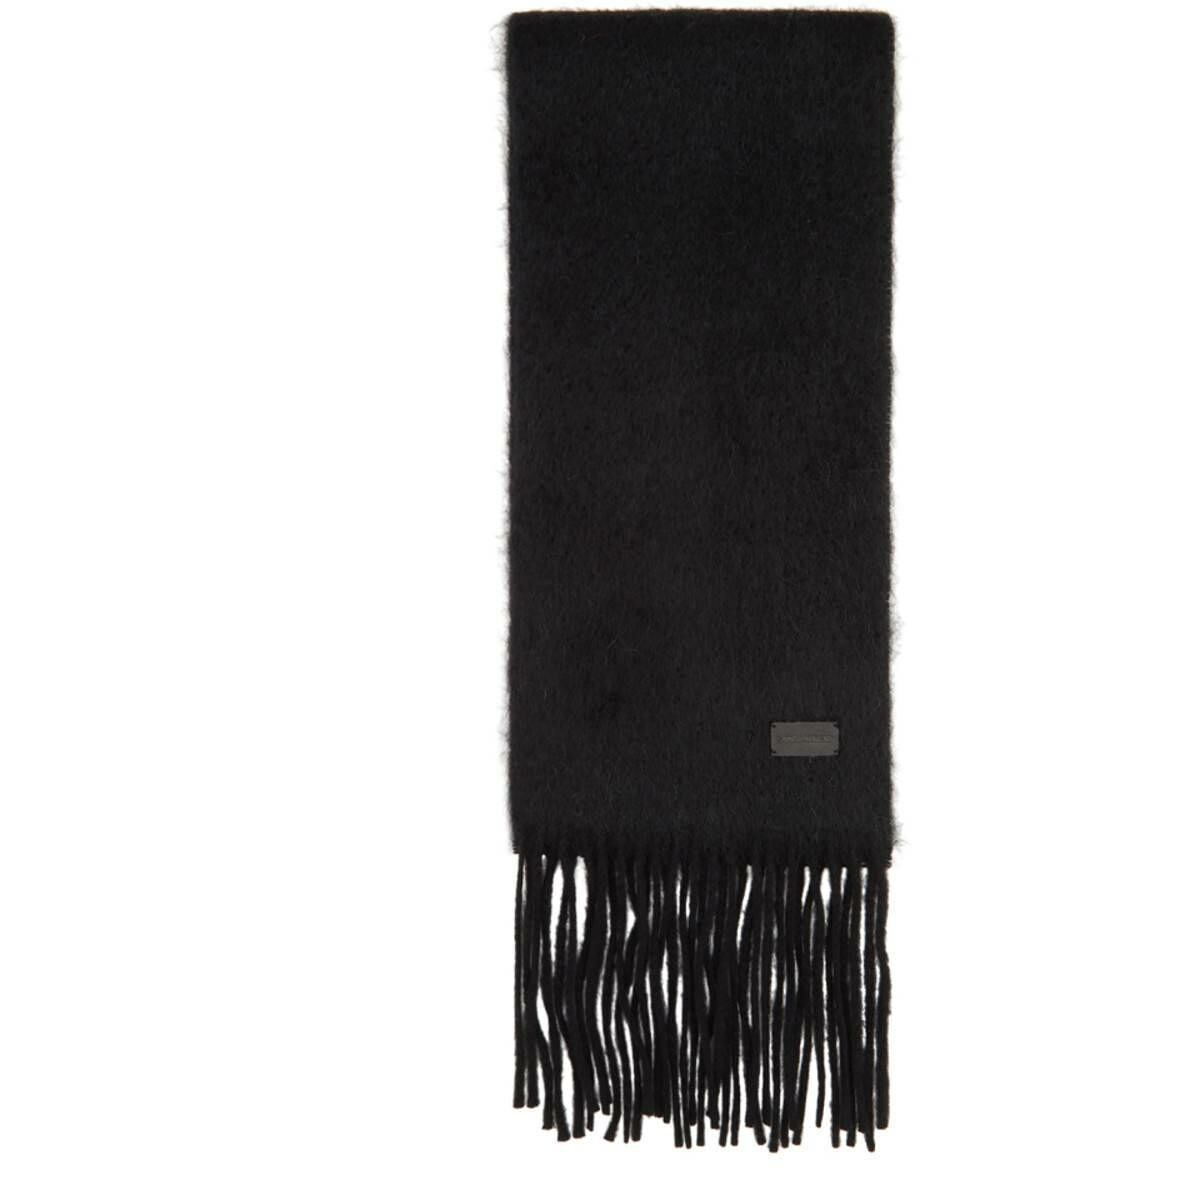 Saint Laurent Black Small Scarf Ssense USA MEN Men ACCESSORIES Mens SCARFS